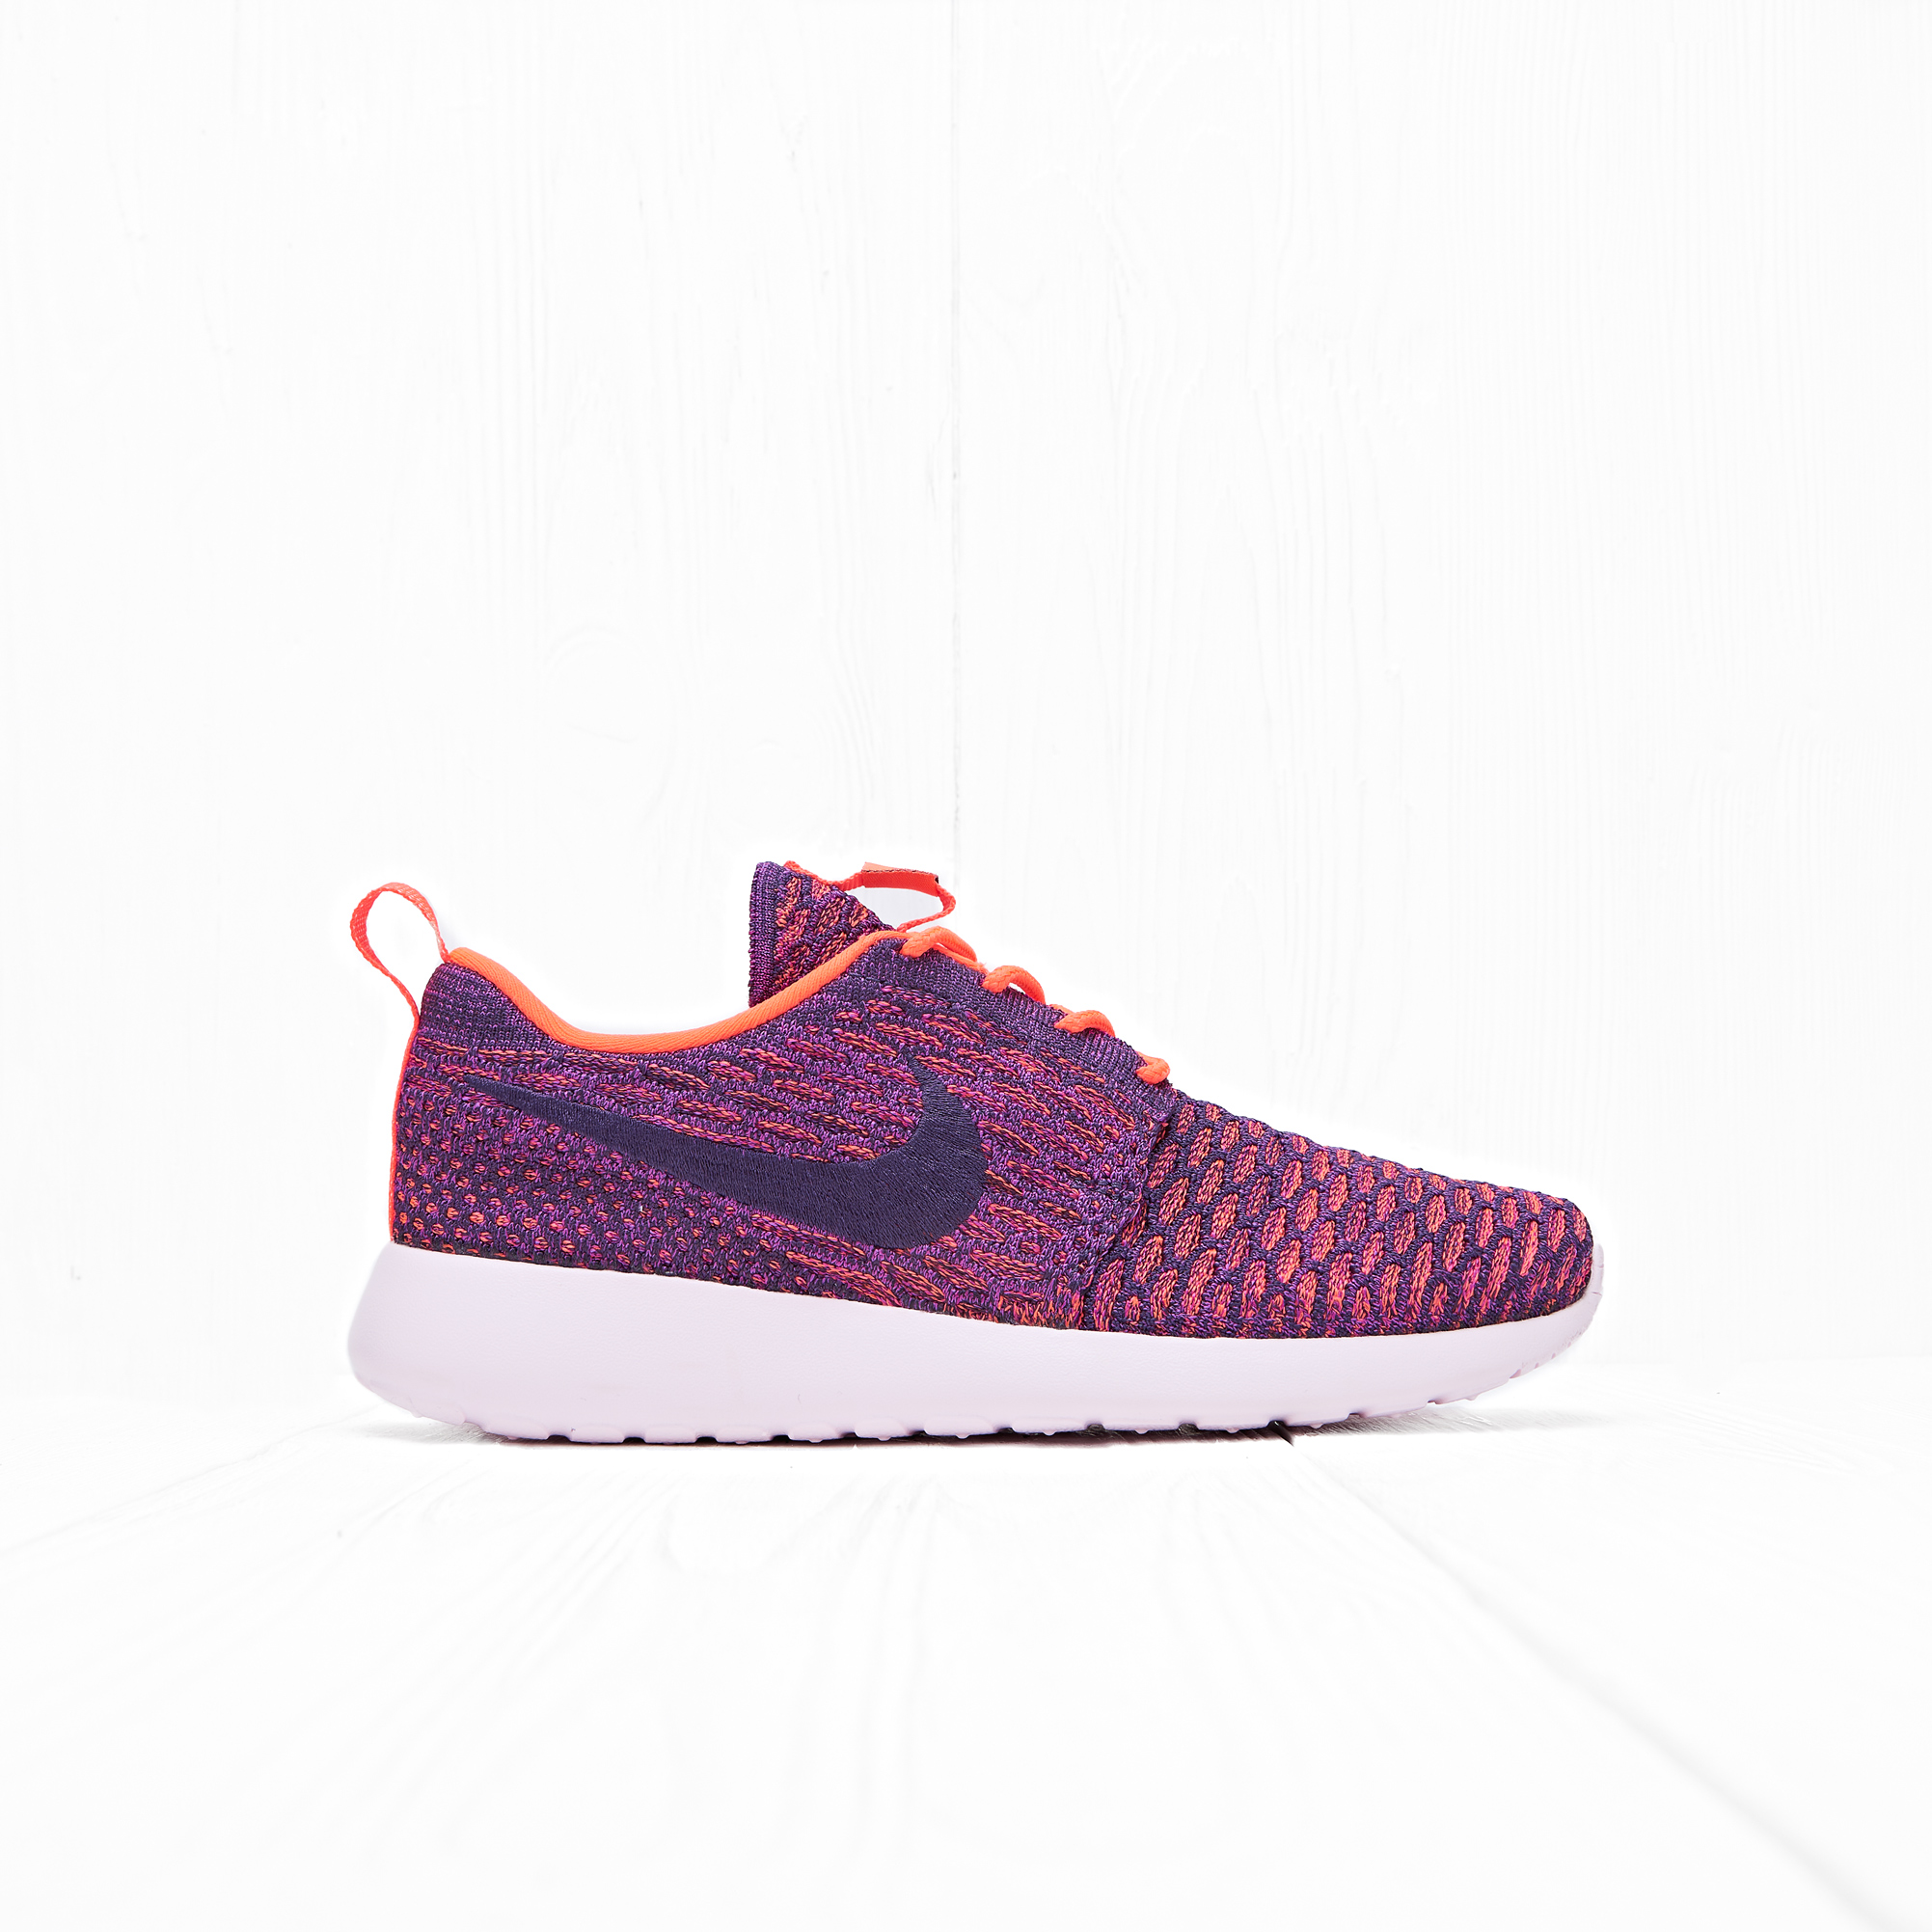 Кроссовки Nike W ROSHE ONE FLYKNIT Total Crimson/Grand Purple